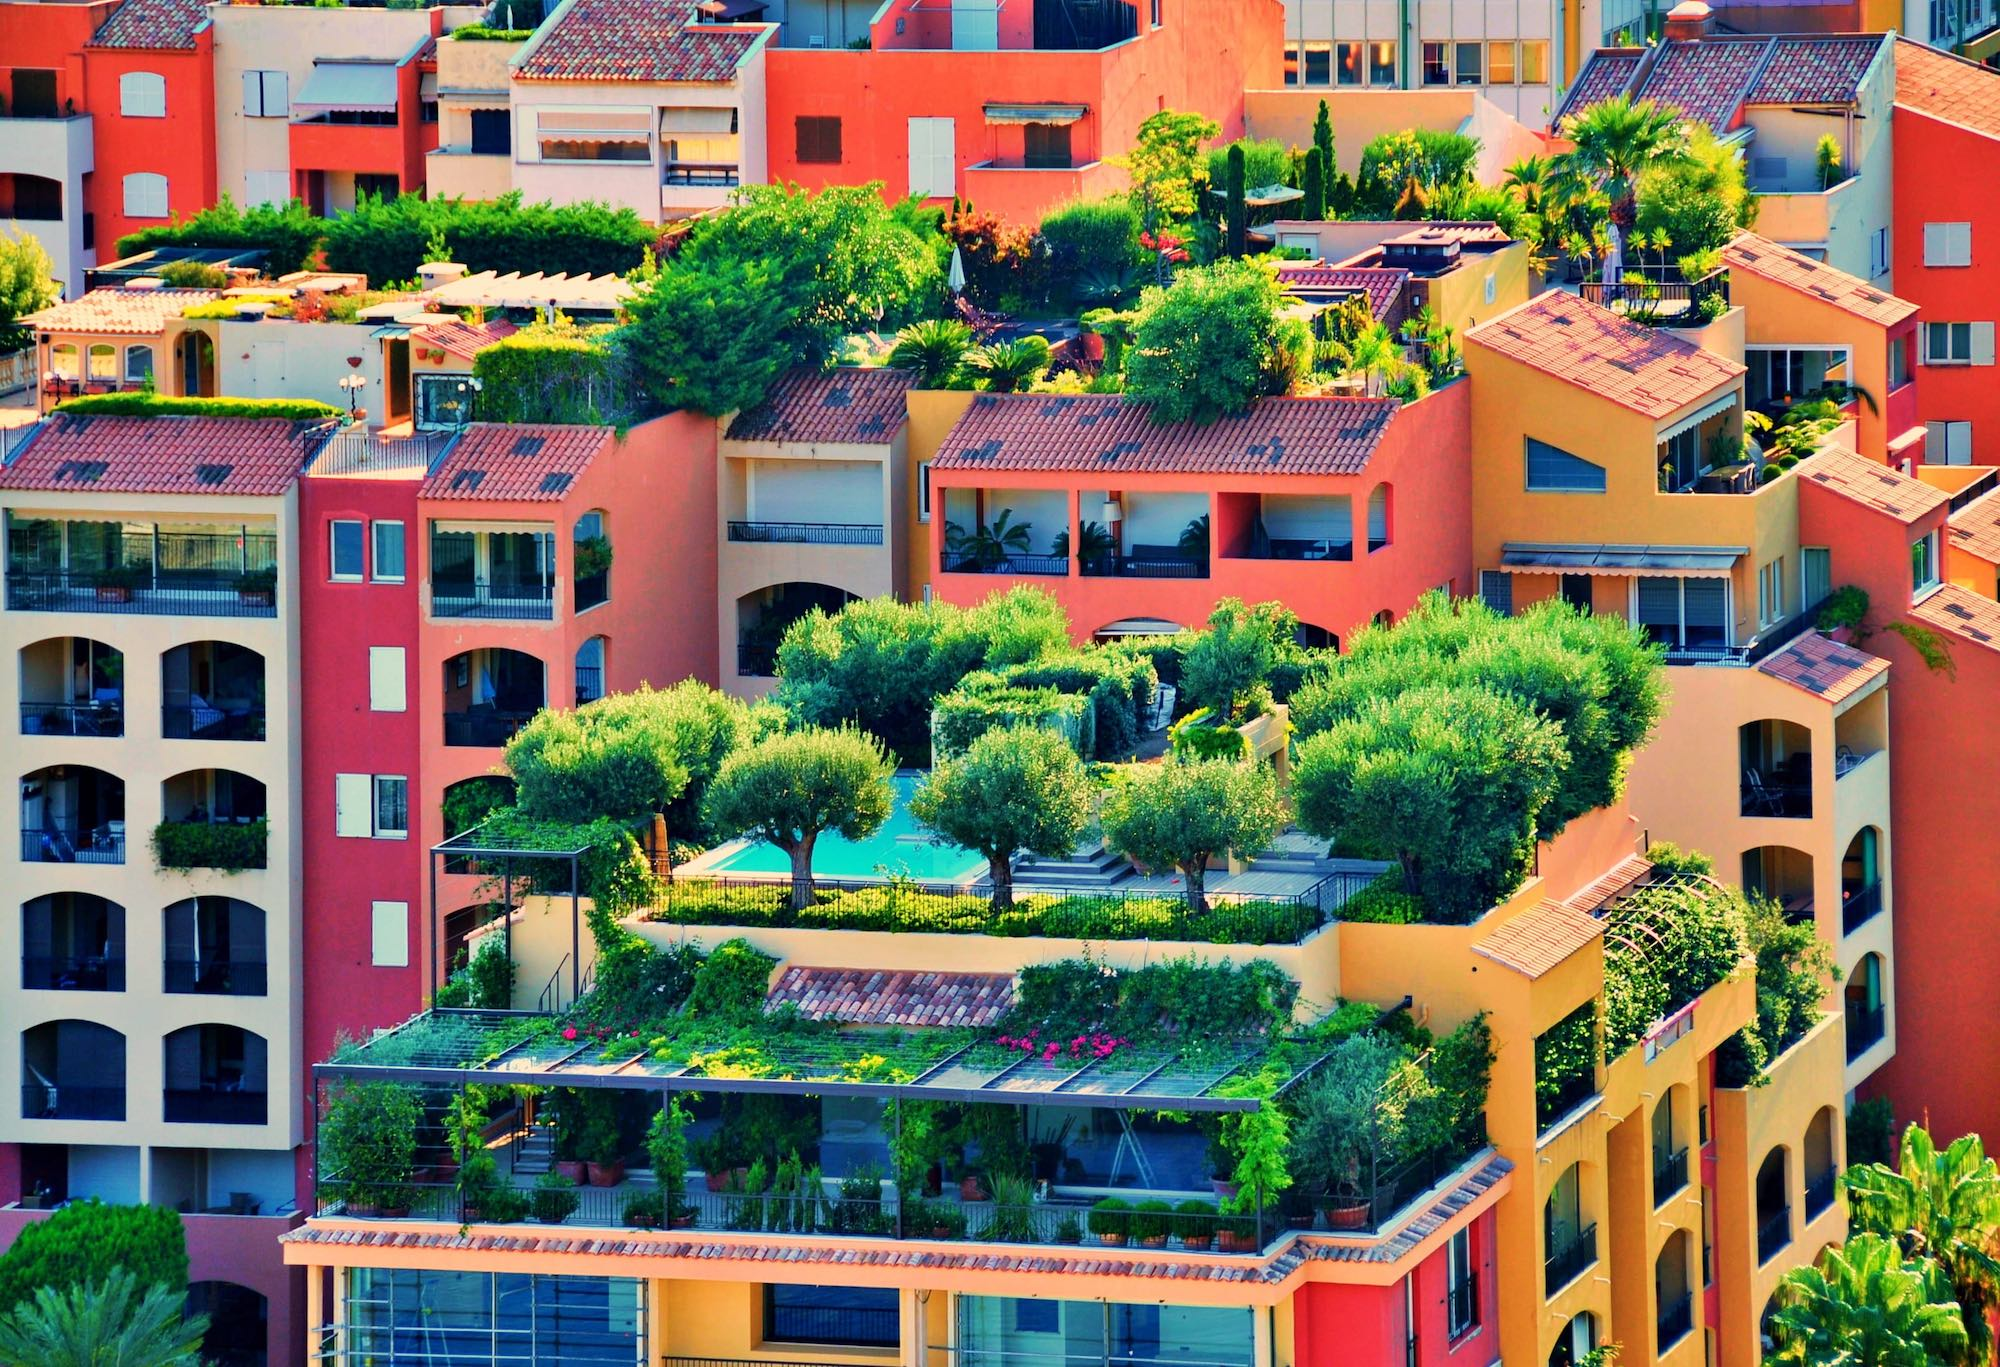 Tips for Making Budget-Friendly Rooftop Garden